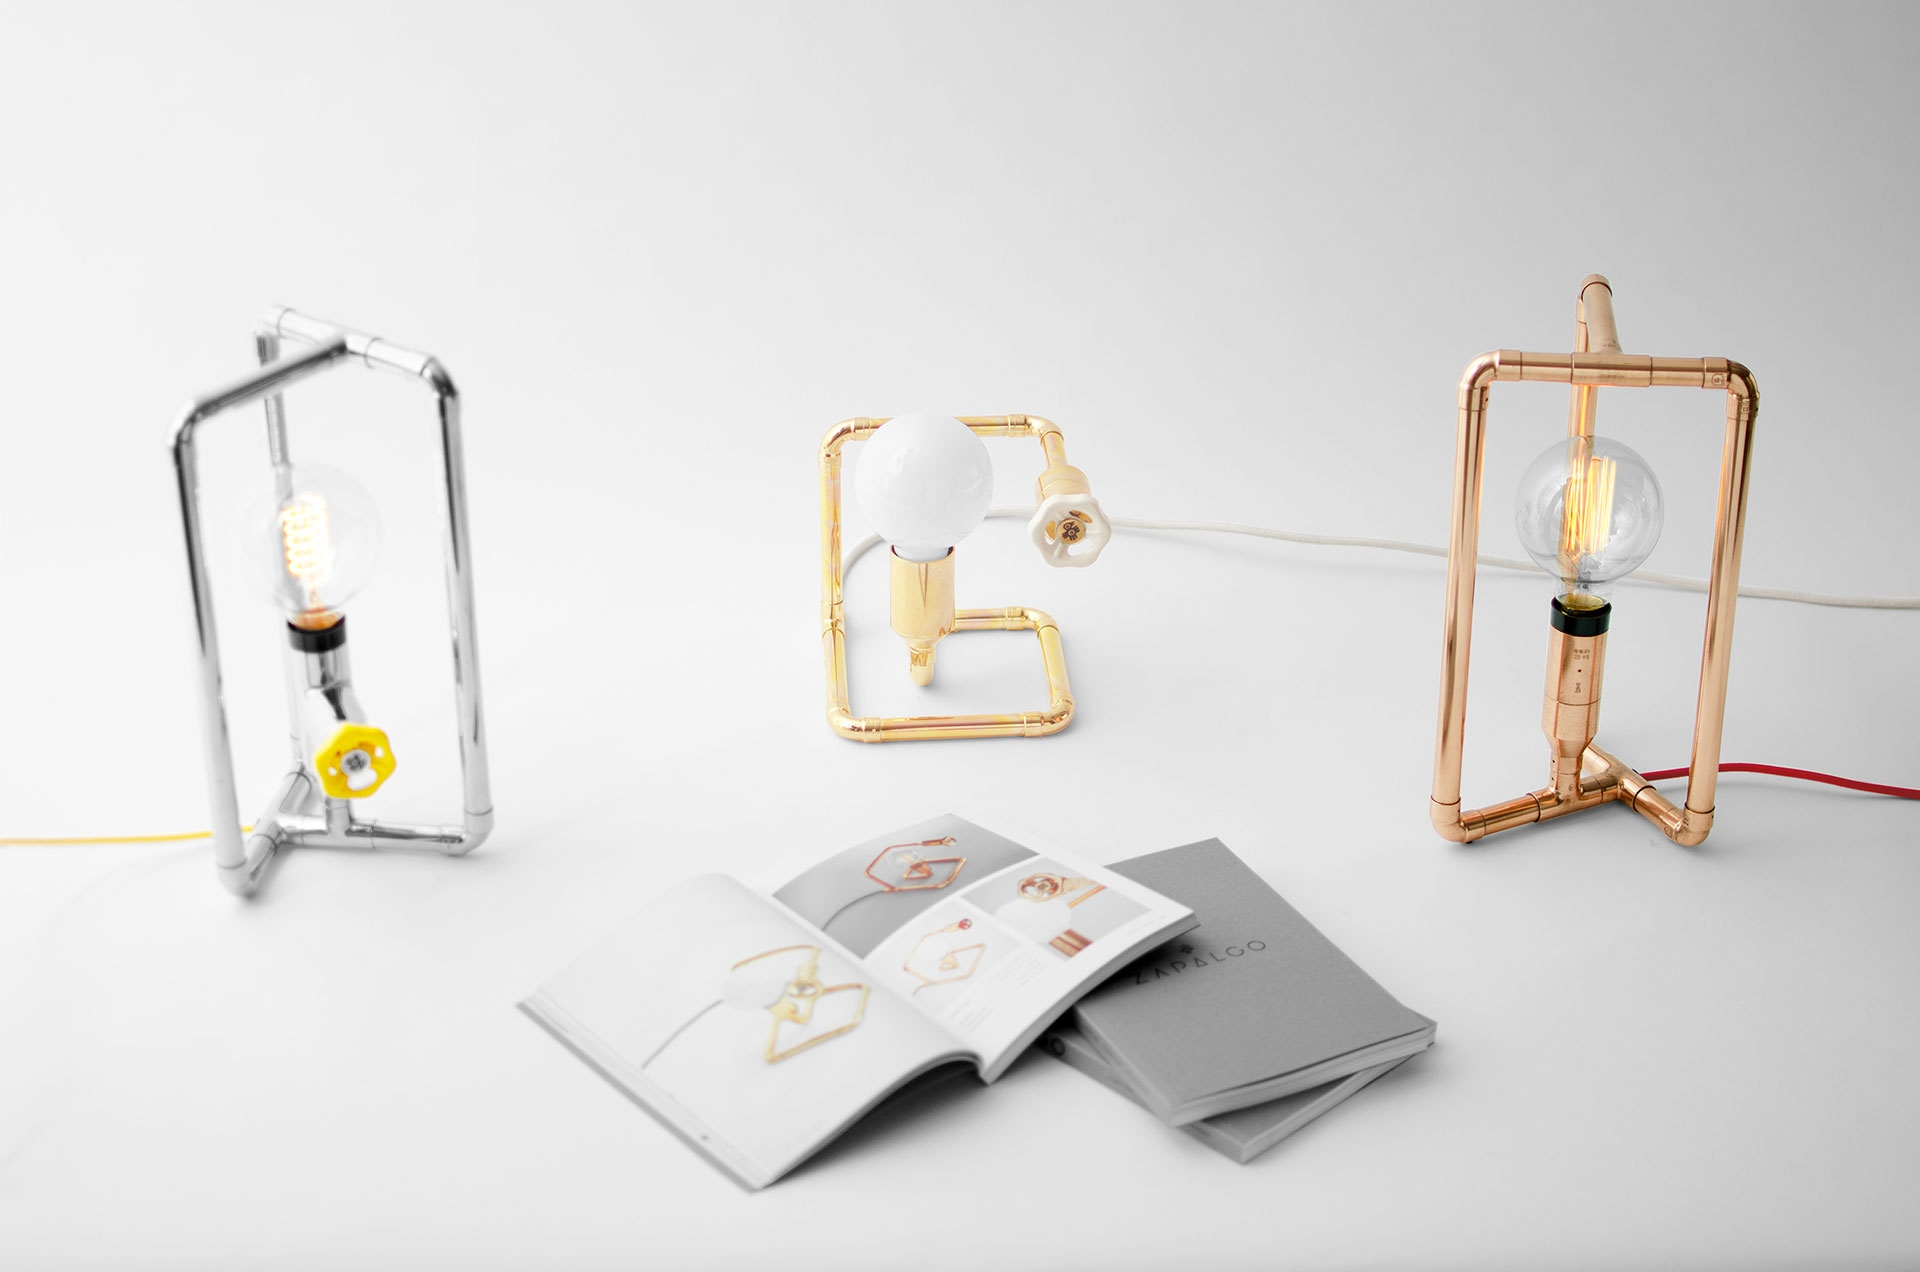 Cool dimmable table lamps in colorful finishes inspired by scandinavian design